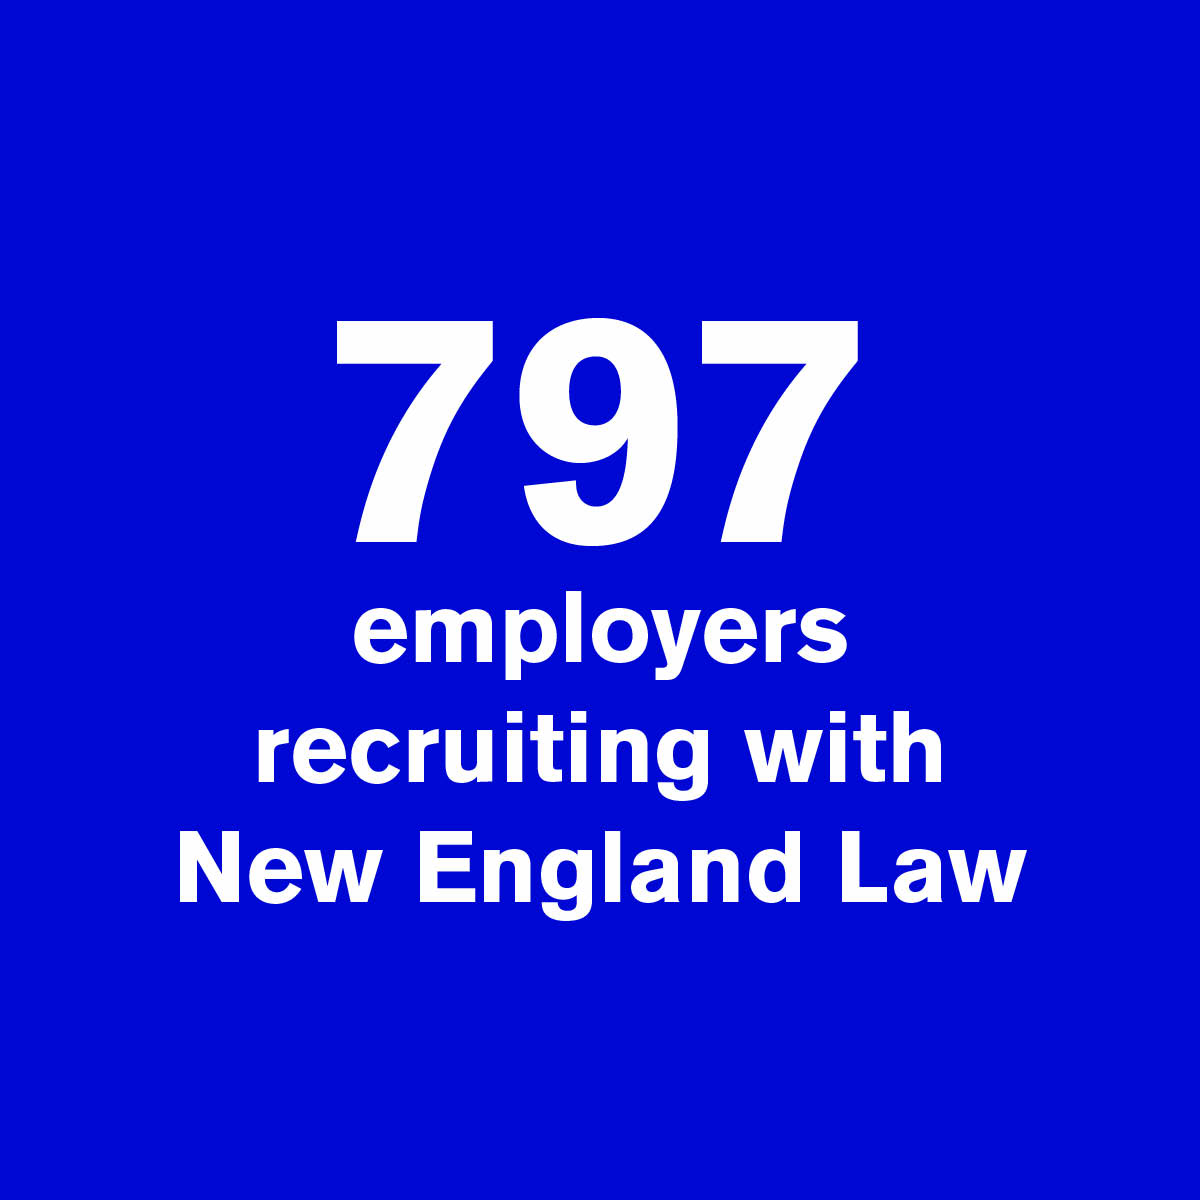 how-many-employers-recruiting-at-new-england-law-797